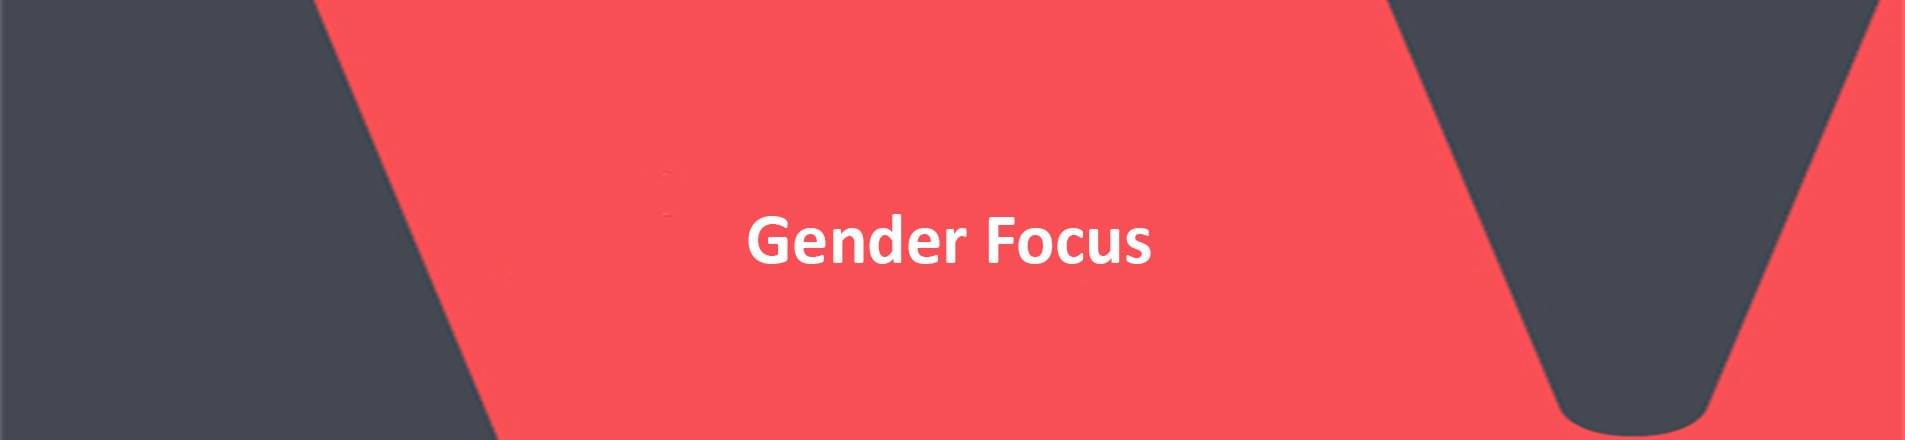 """VERCIDA banner image.  Red background with white text saying """"Gender Focus""""."""